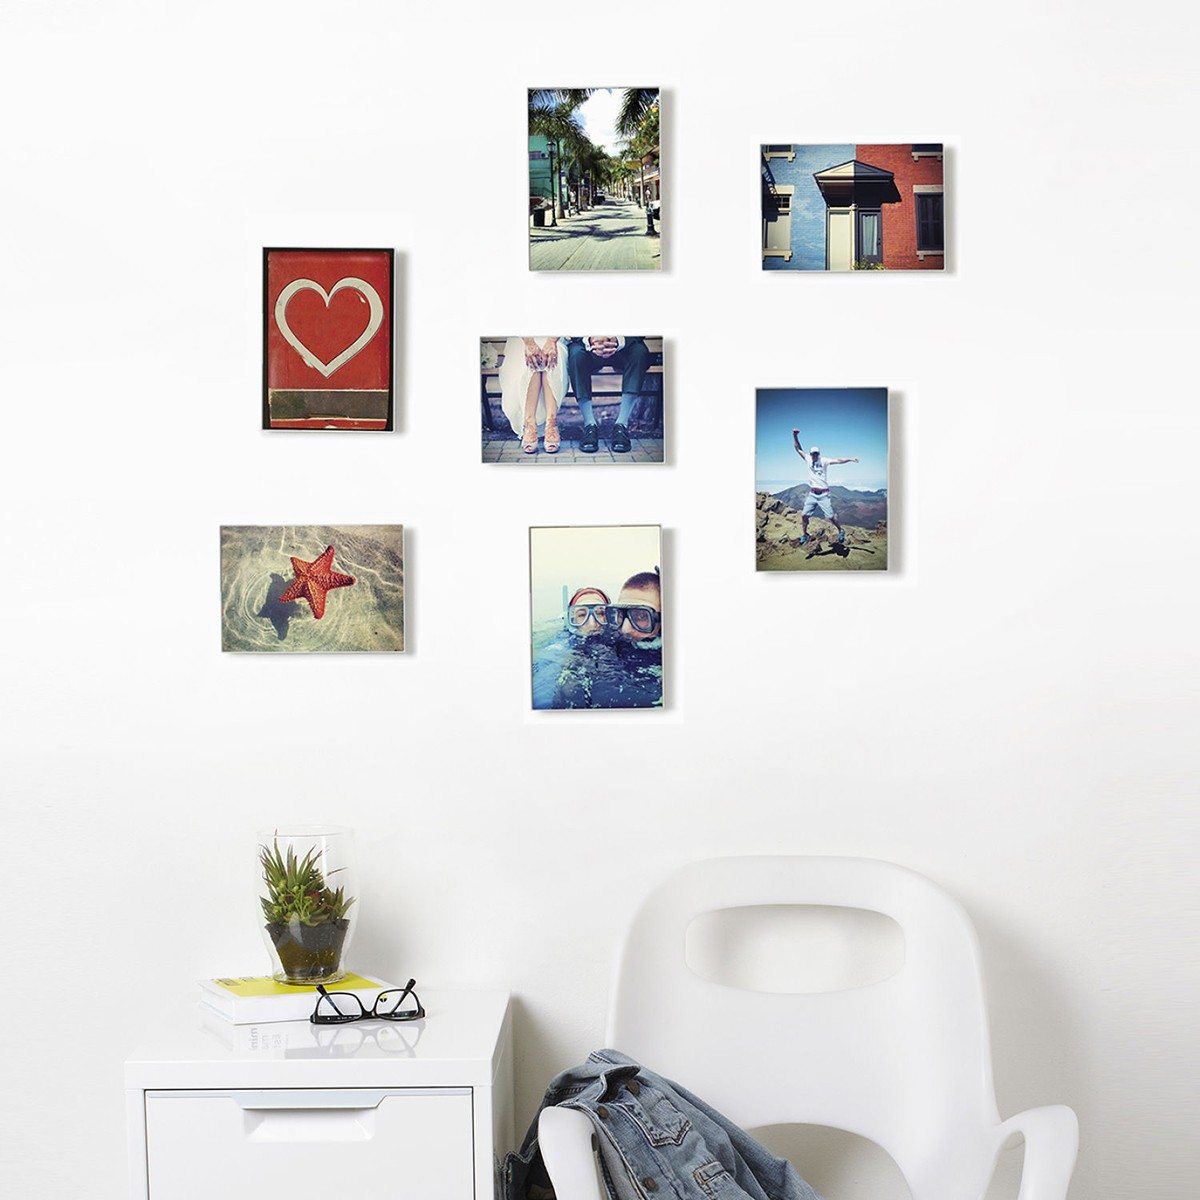 Wall Art - lettres design